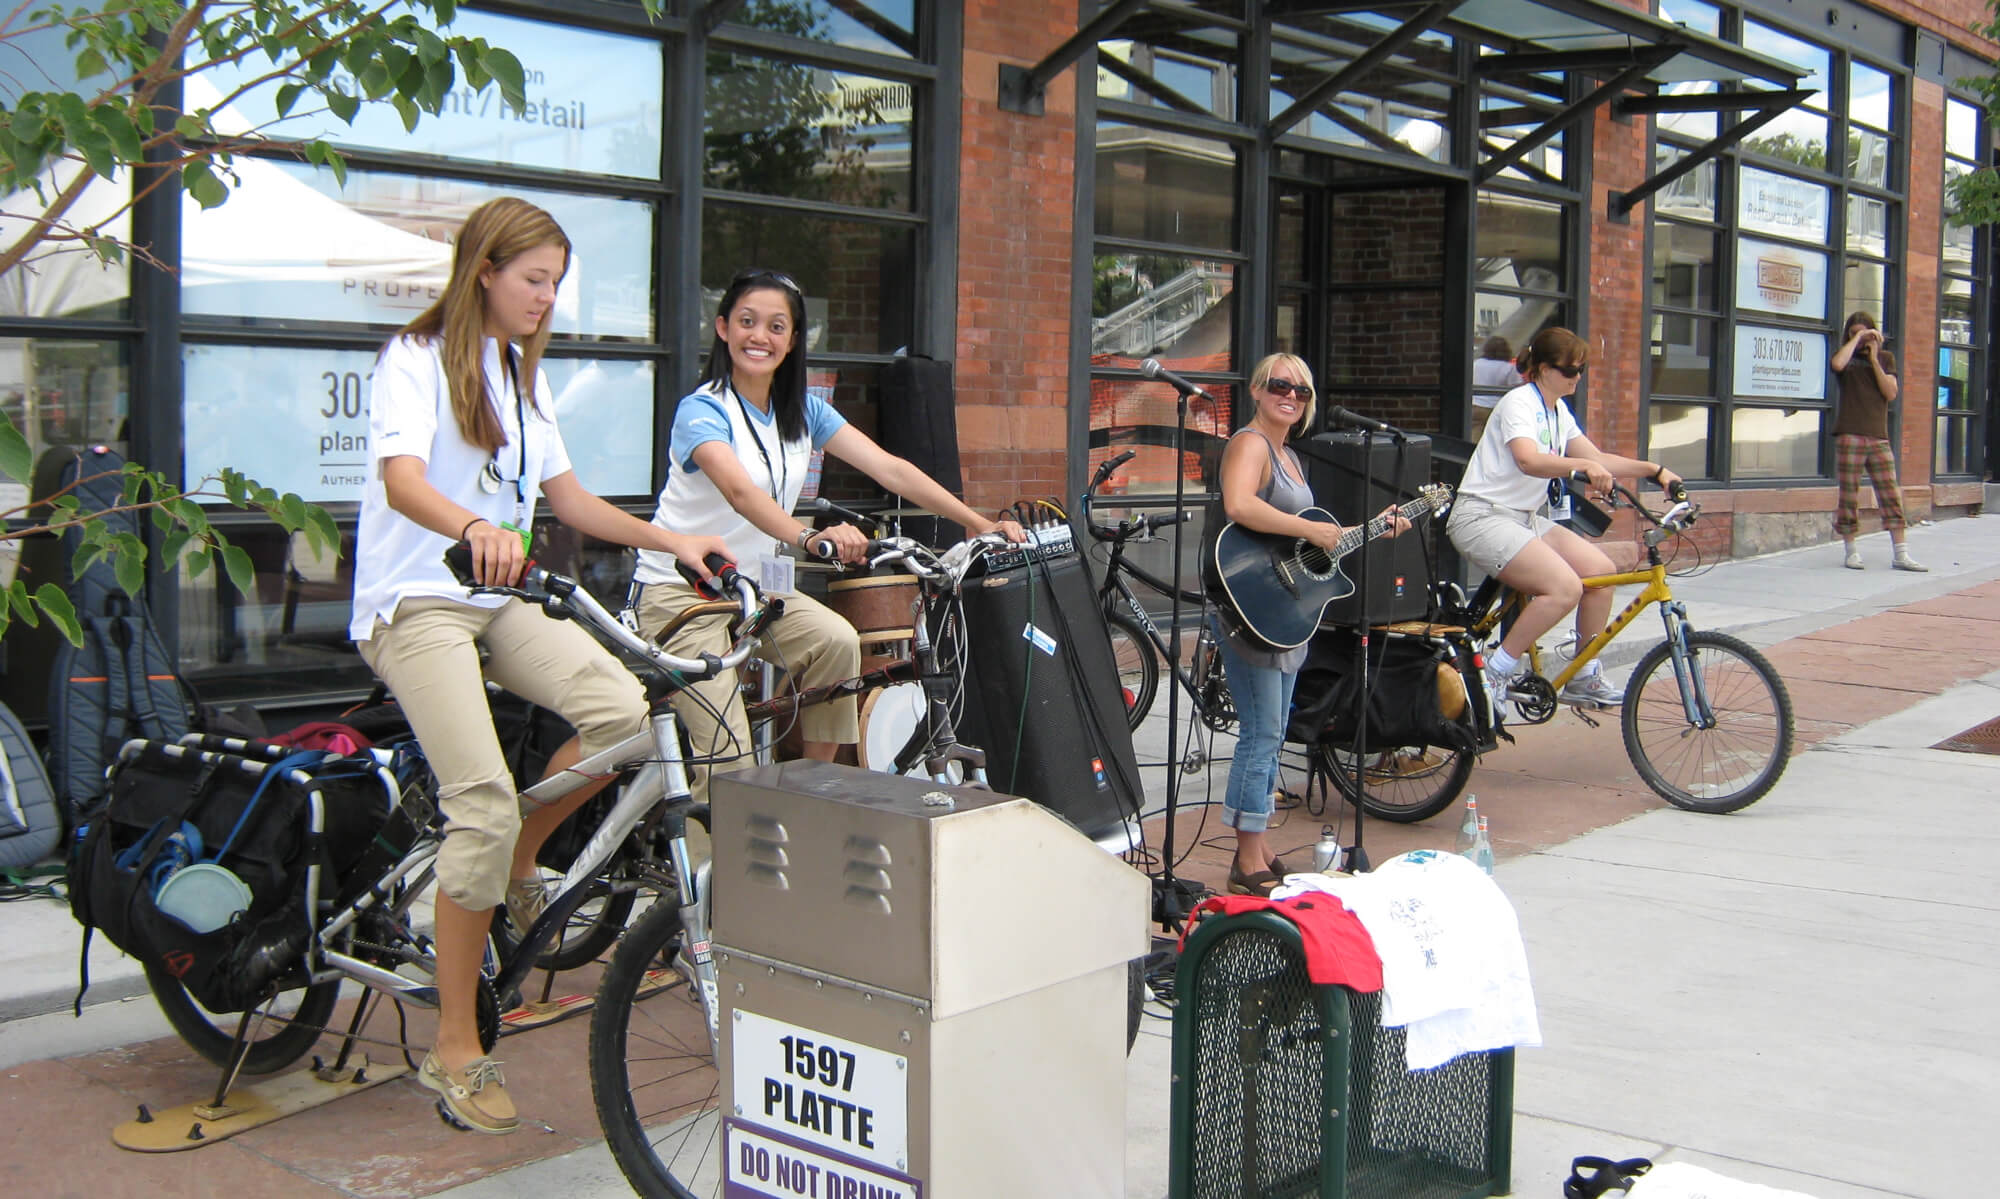 People generating power by cycling in Denver, Colorado